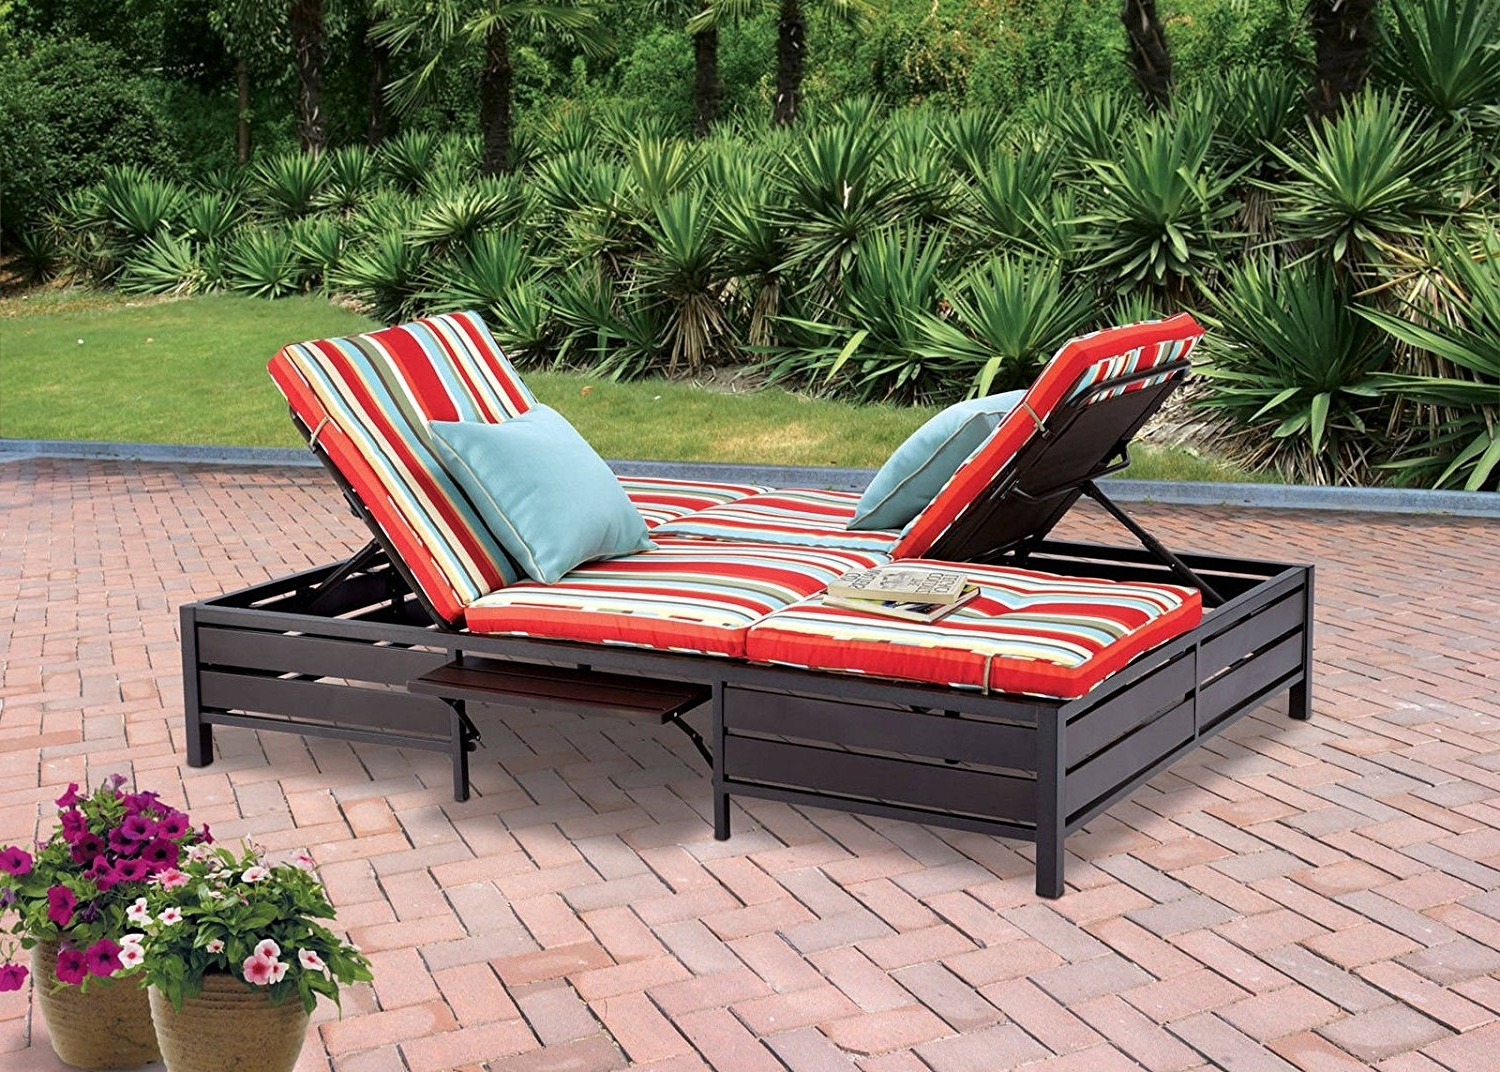 Amazon : Double Chaise Lounger – This Red Stripe Outdoor With Regard To Recent Double Chaise Lounge Chairs (View 3 of 15)